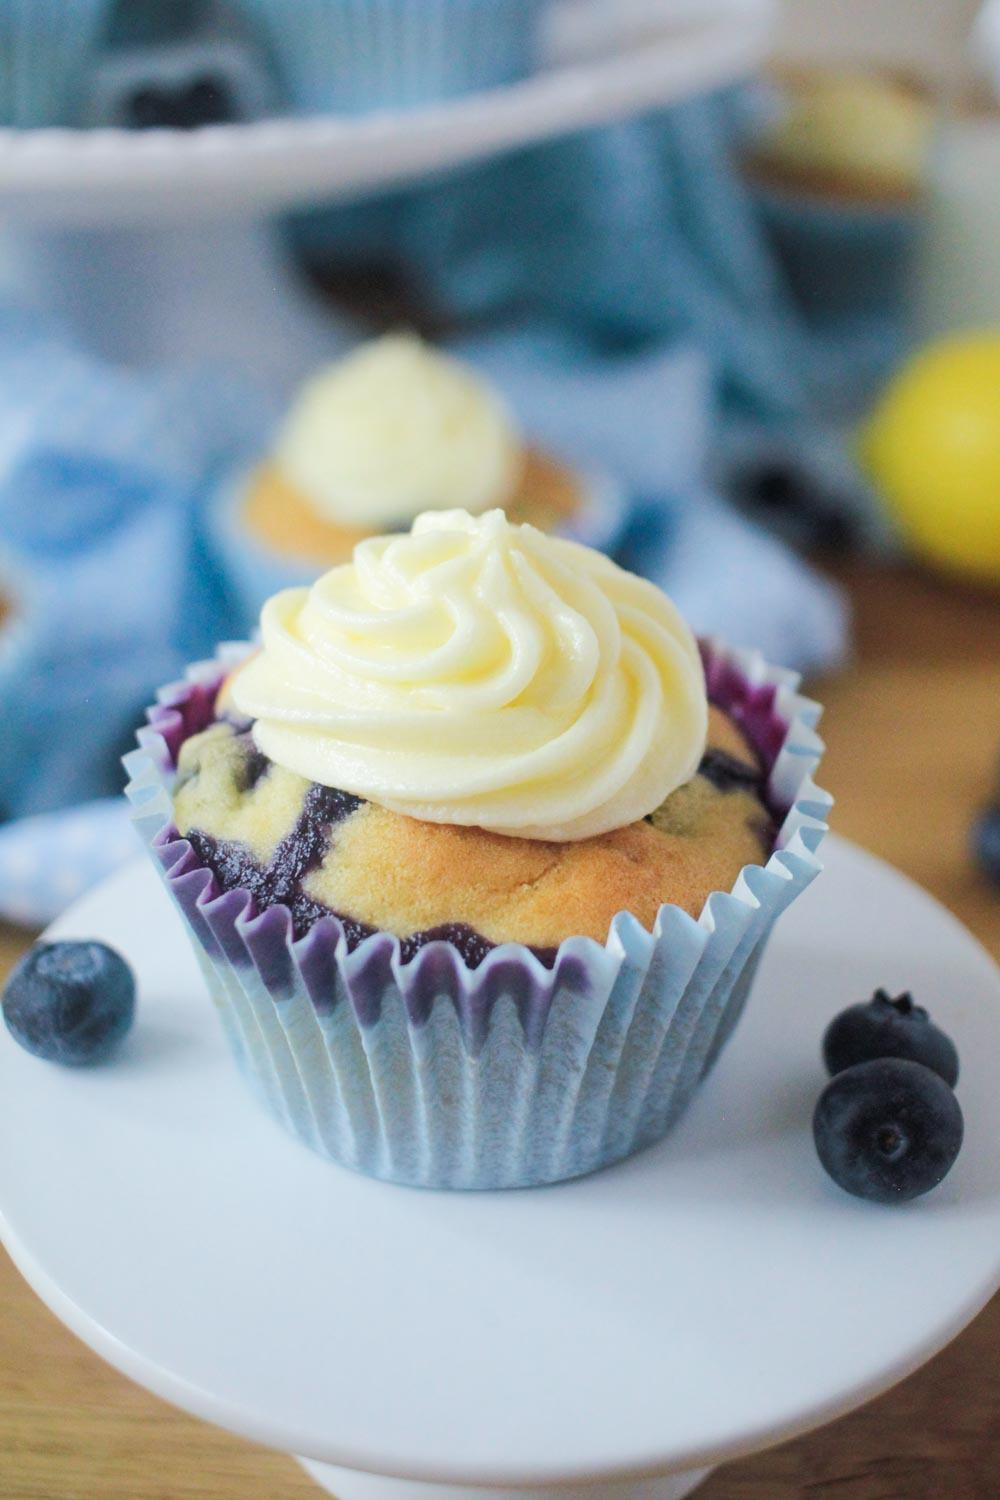 Blueberry and Lemon Muffins with a Limoncello Frosting-5 - Globe Scoffers | globescoffers.com